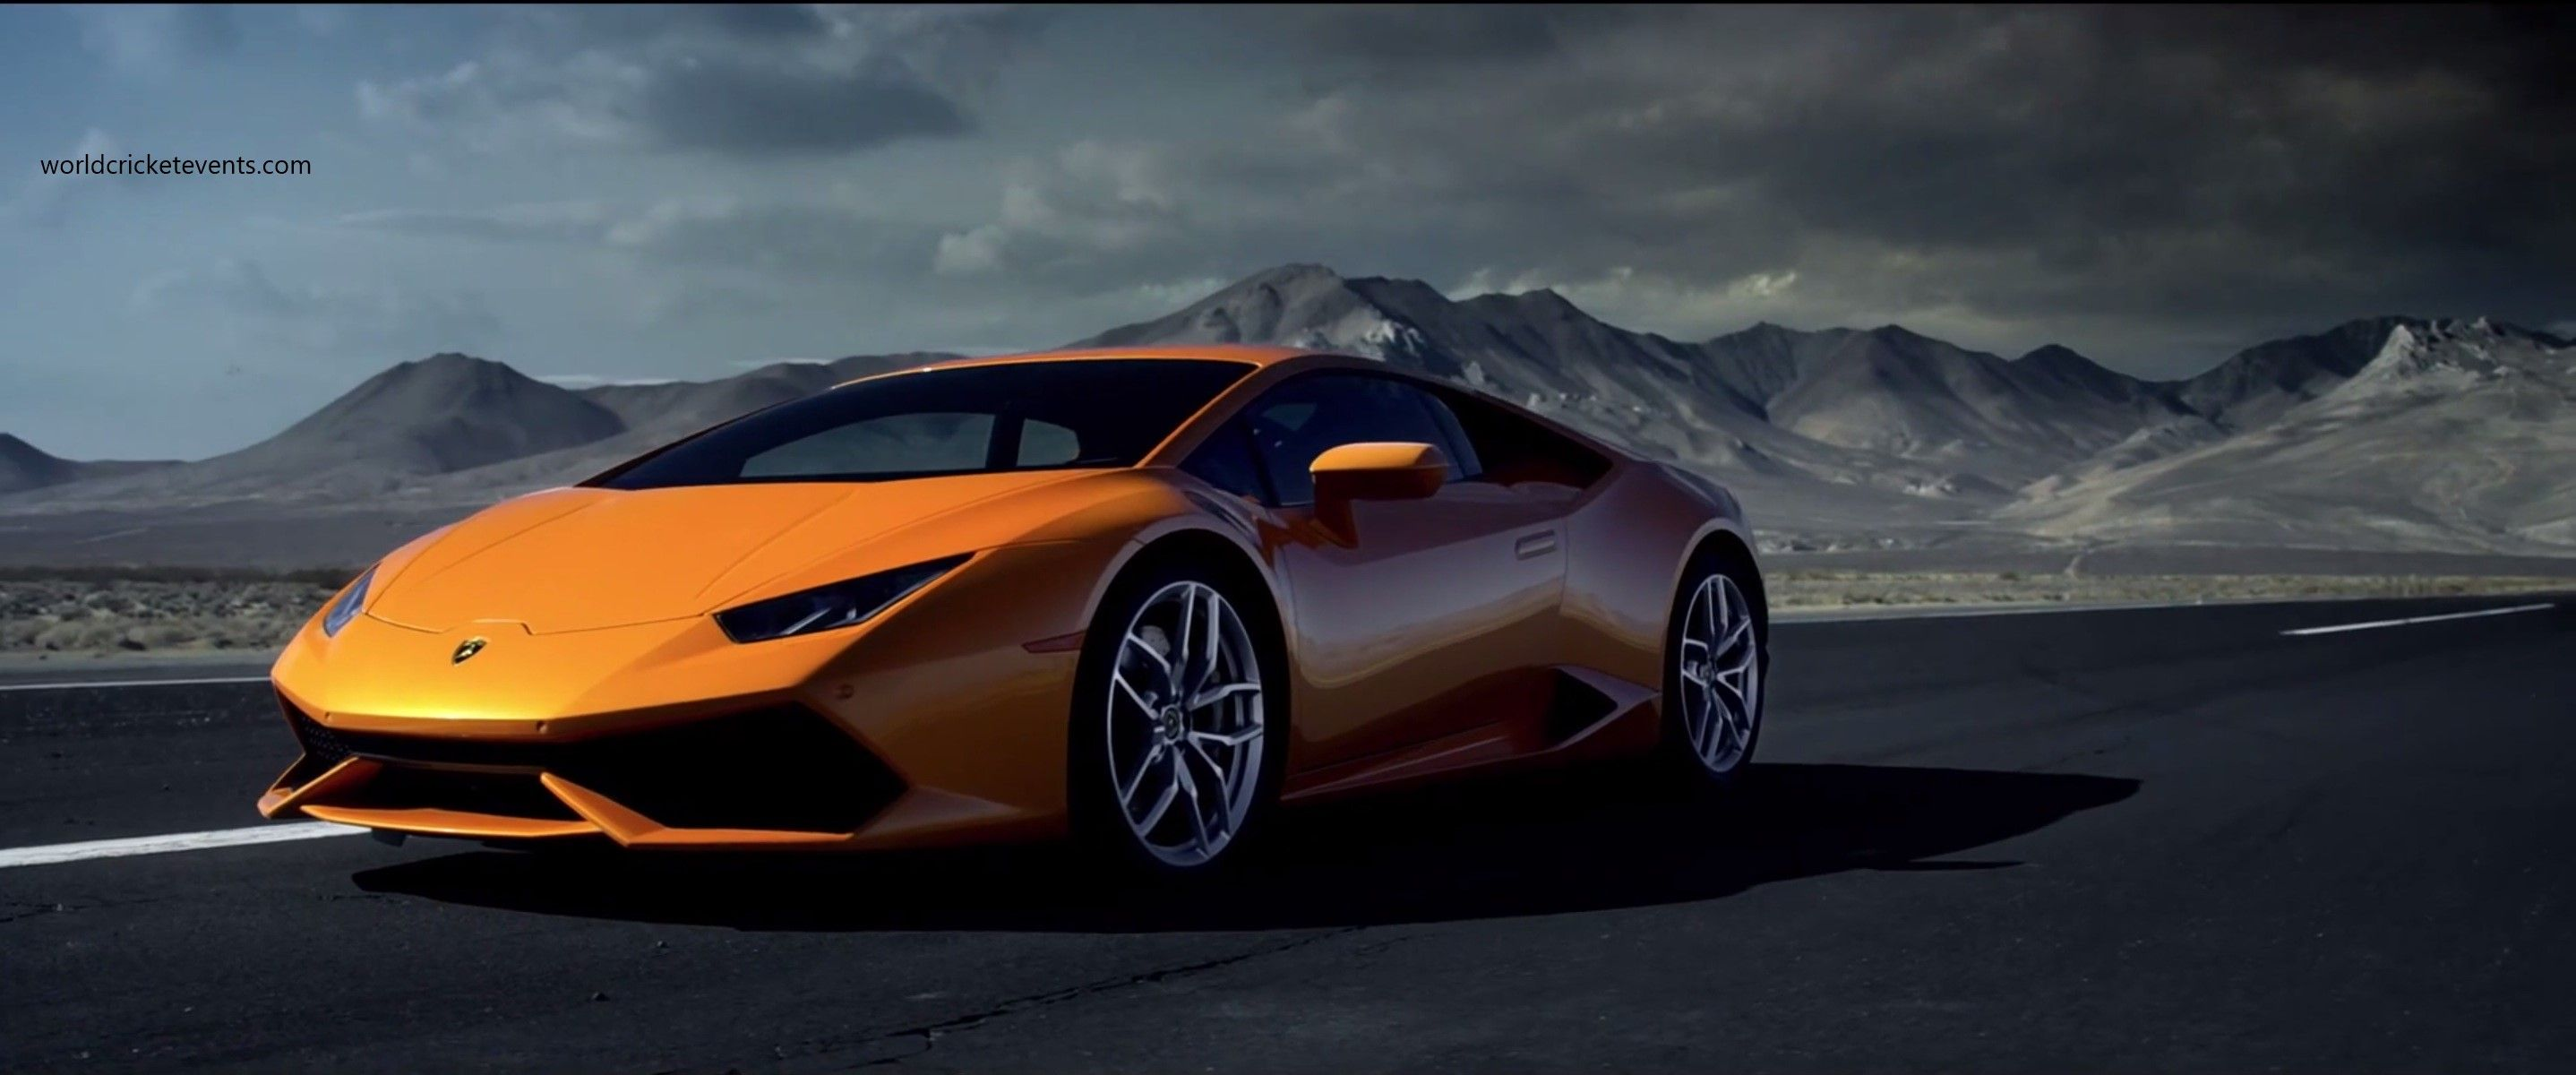 Pin By Cricket Events On Lamborghini Hd Wallpapers For Desktop